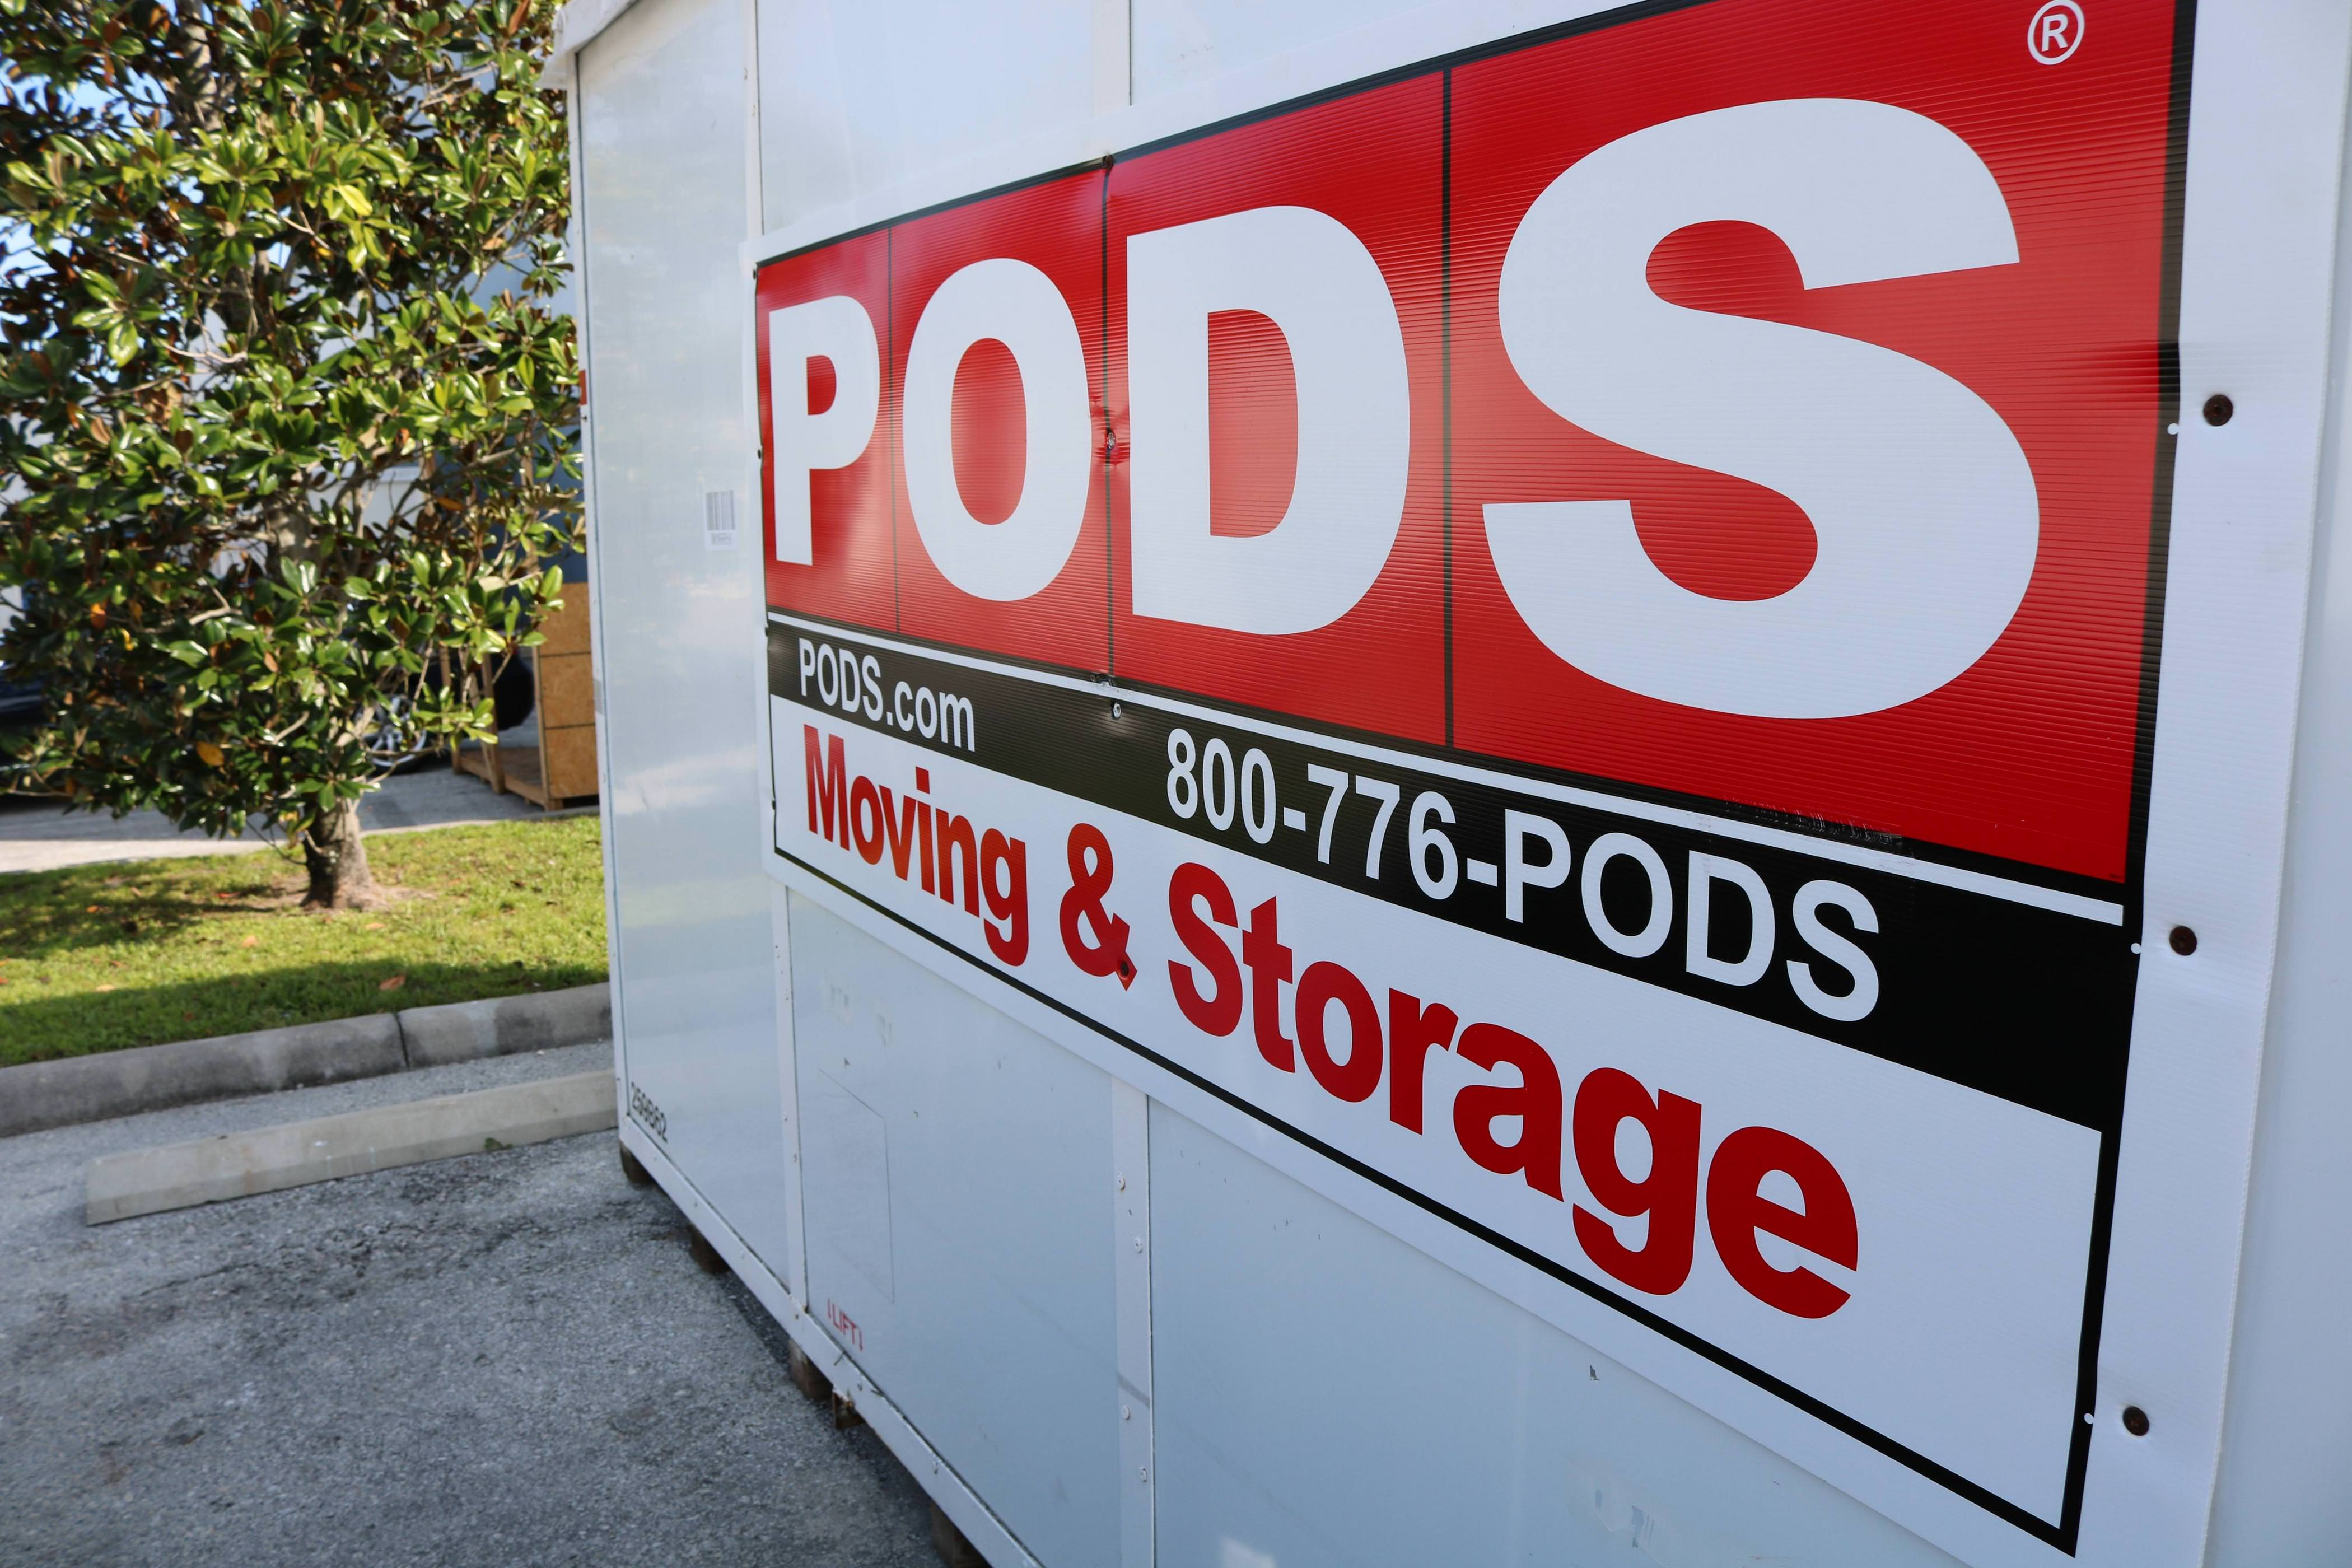 PODS - East Haven, CT